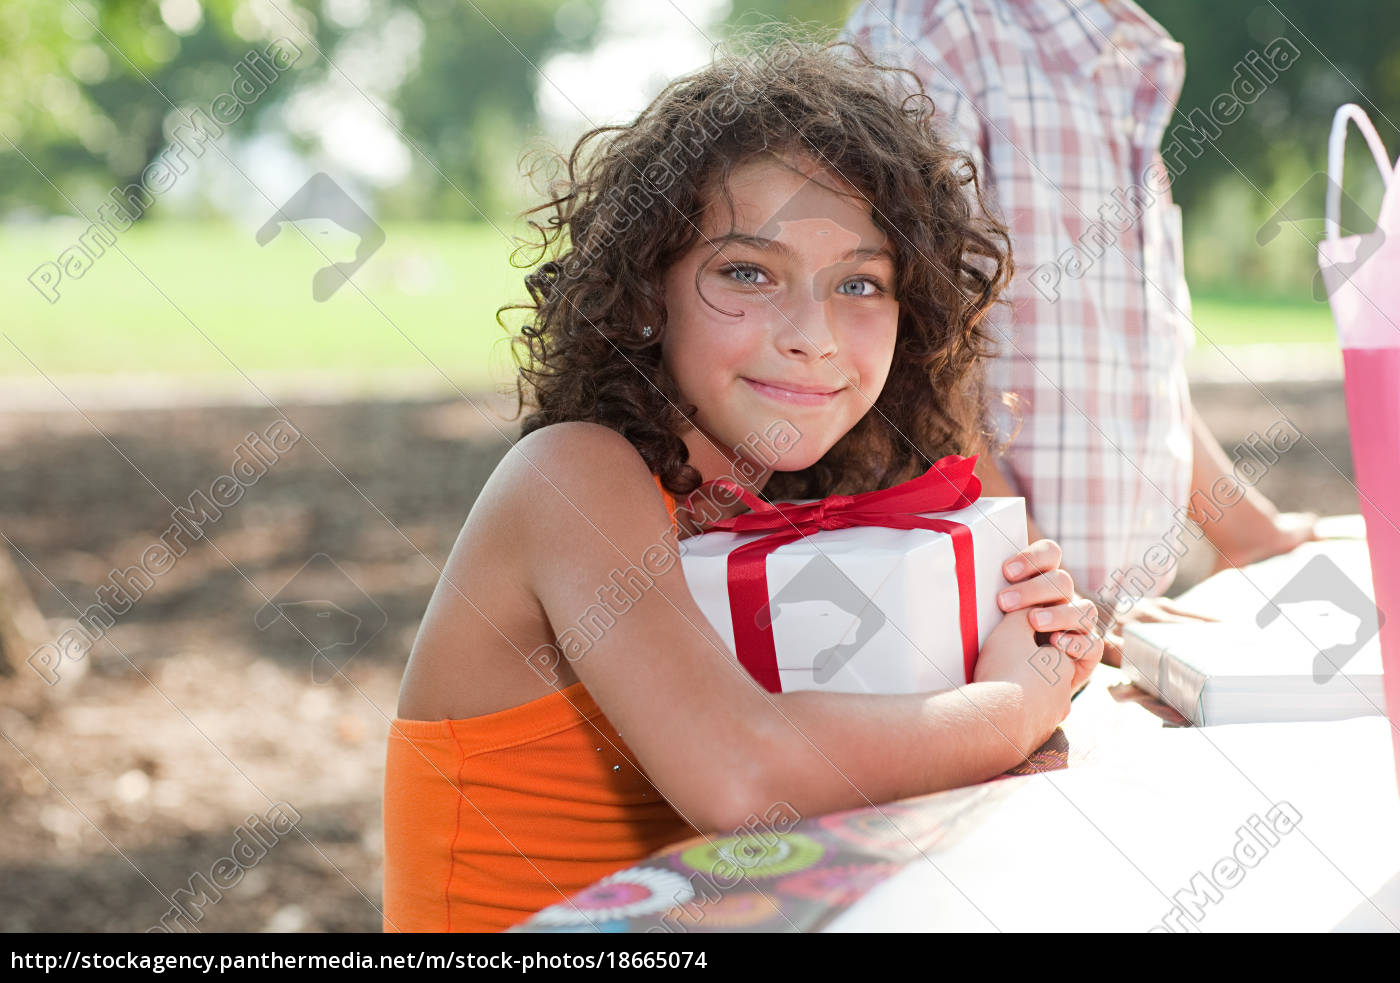 girl, at, birthday, party, with, birthday - 18665074